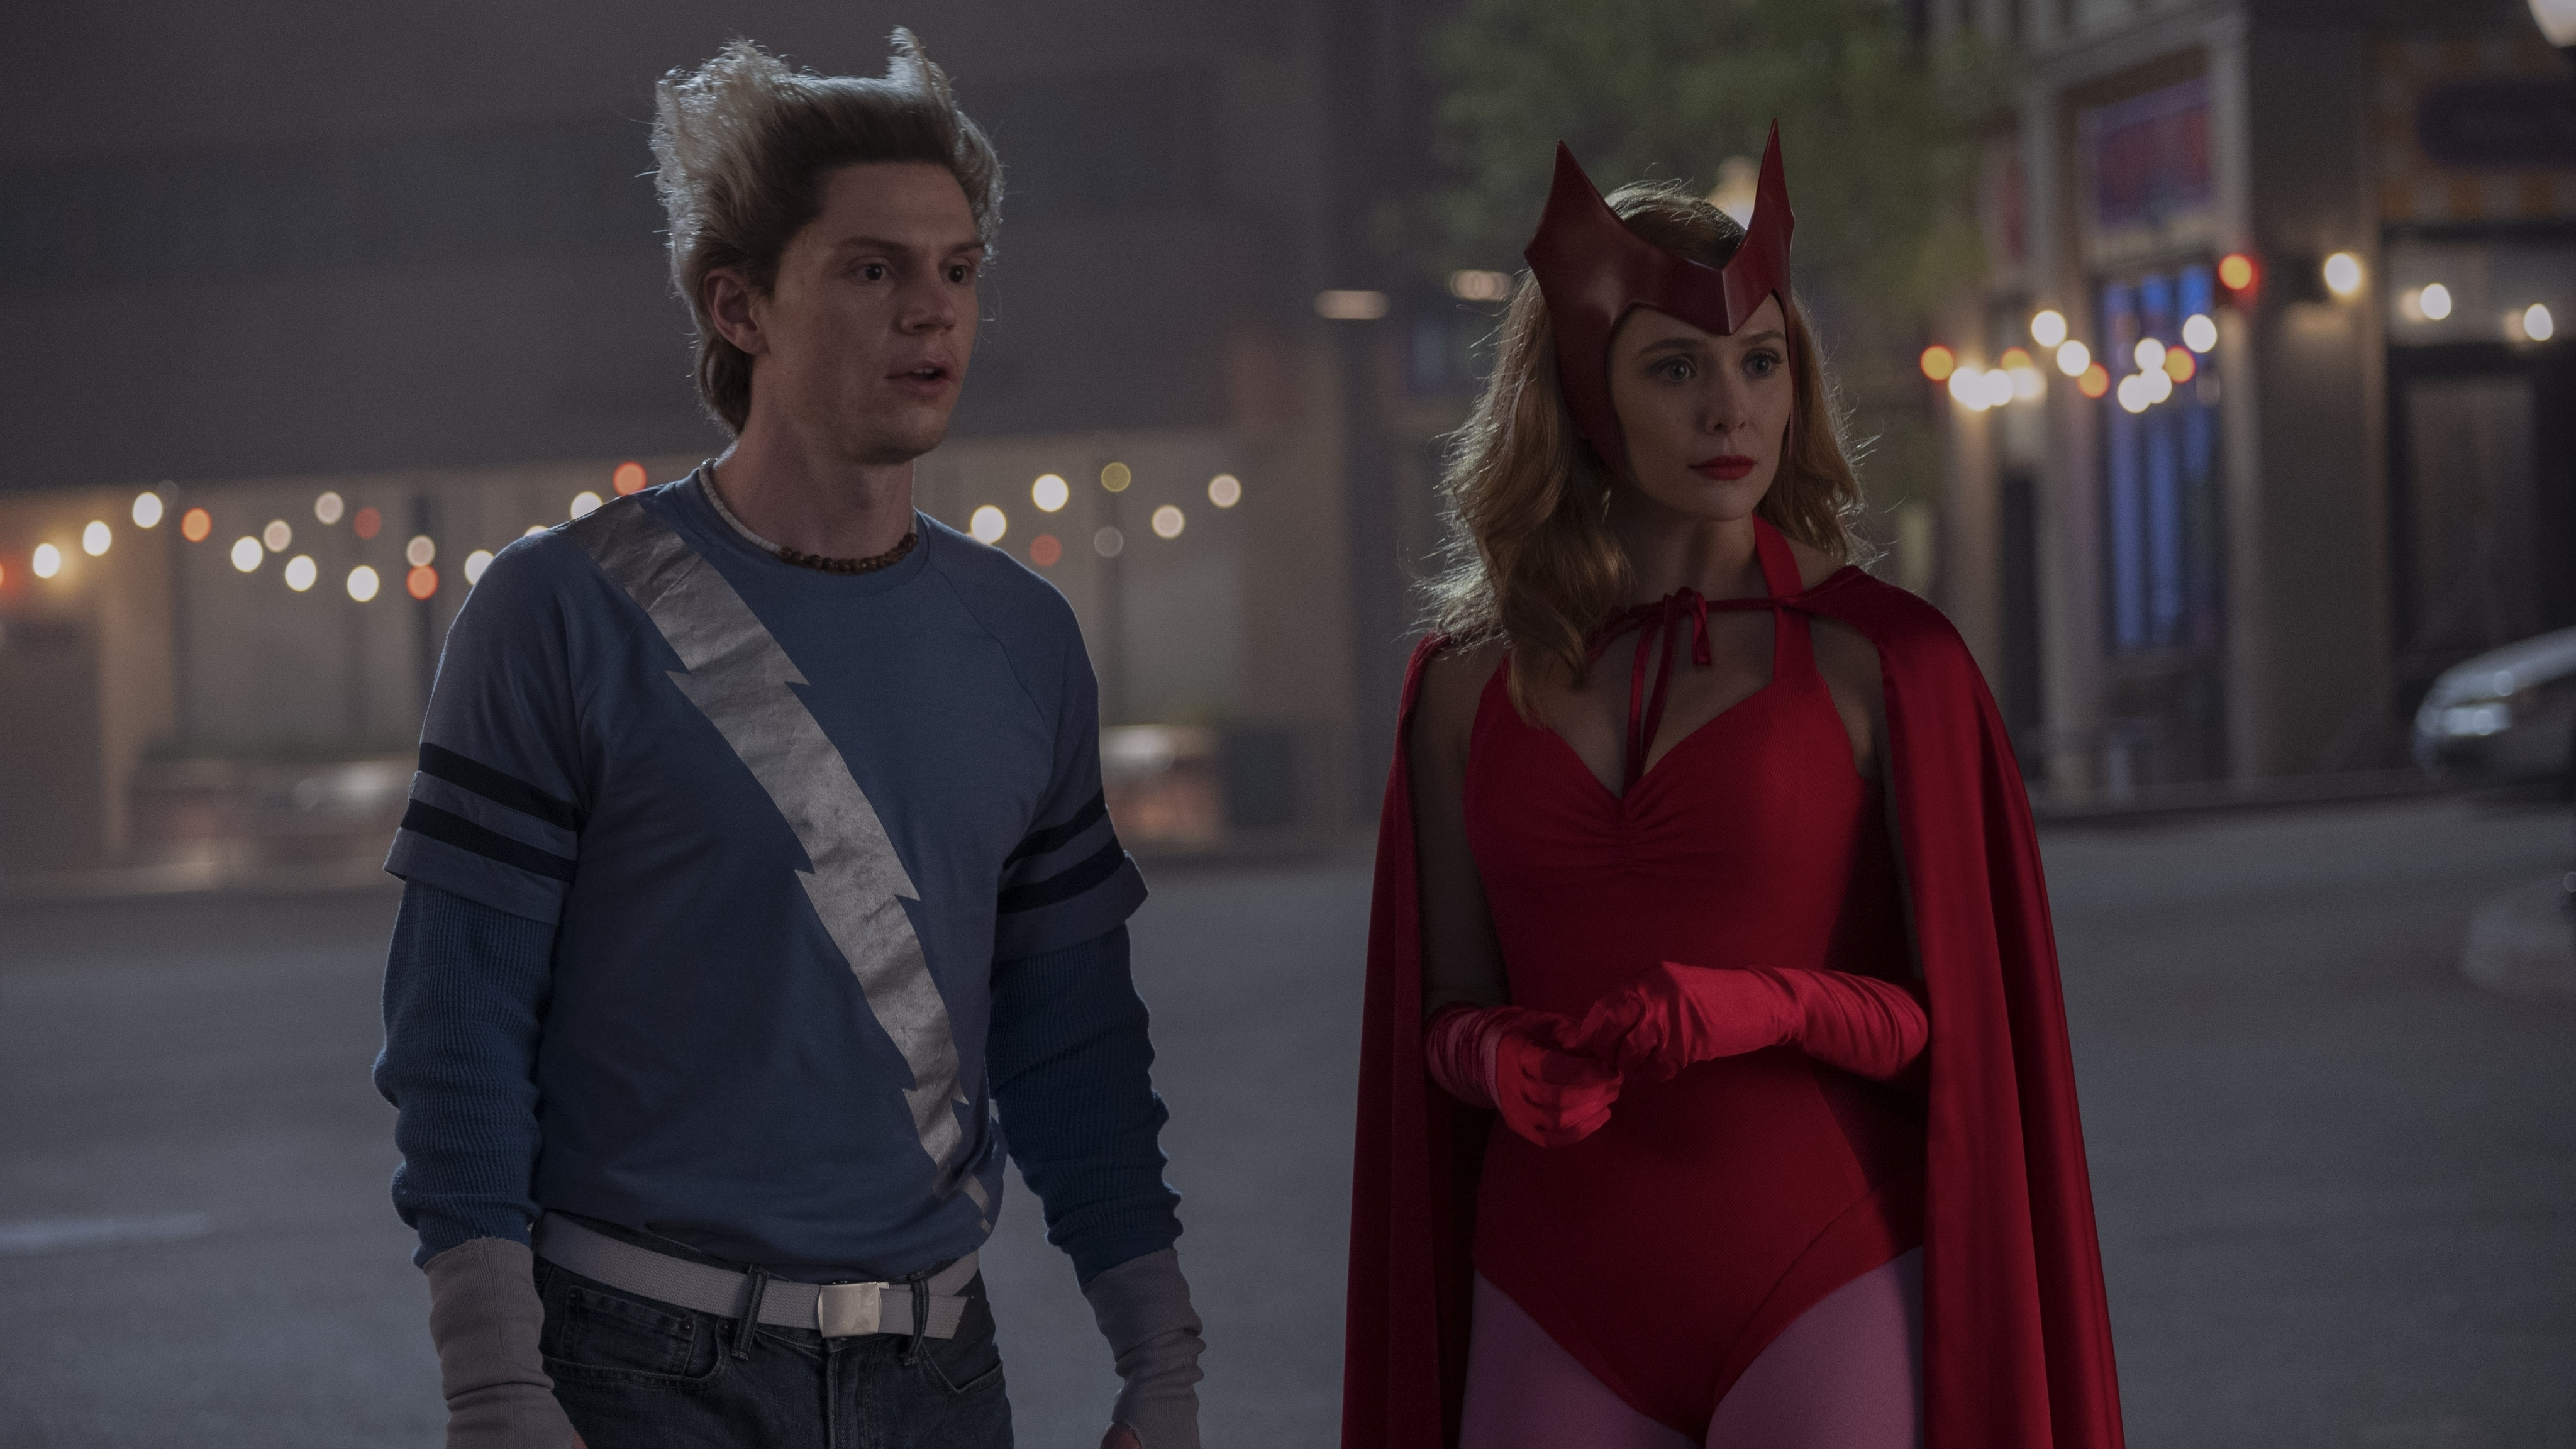 (L-R): Evan Peters as Pietro and Elizabeth Olsen as Wanda Maximoff in Marvel Studios' WANDAVISION exclusively on Disney+. Photo by Suzanne Tenner. ©Marvel Studios 2021. All Rights Reserved.